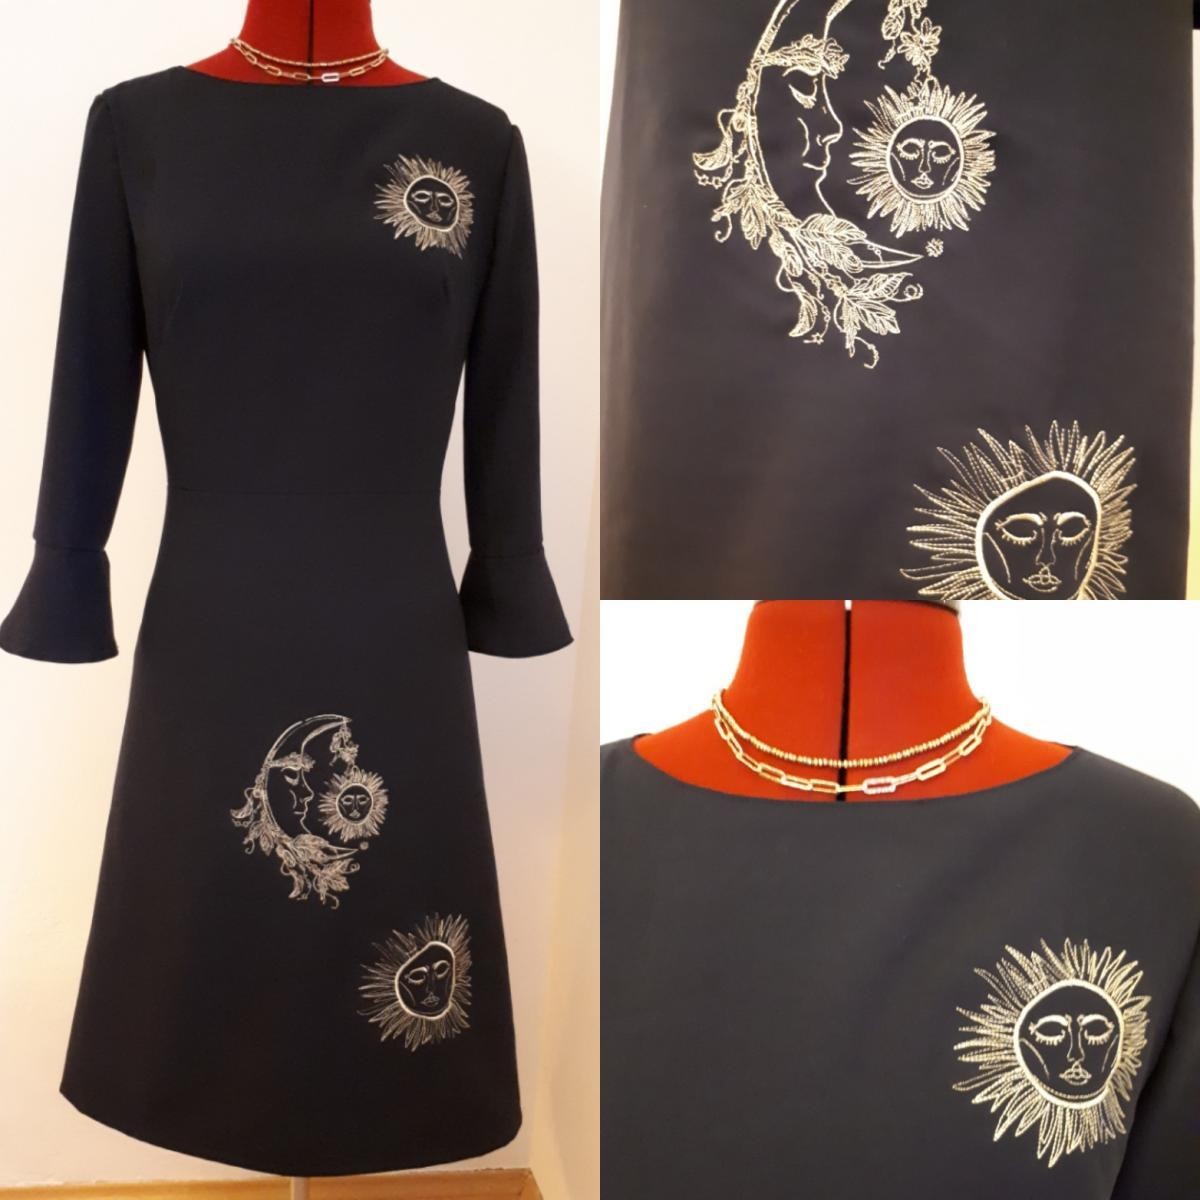 Embroidered dress with Sleeping moon and sun design